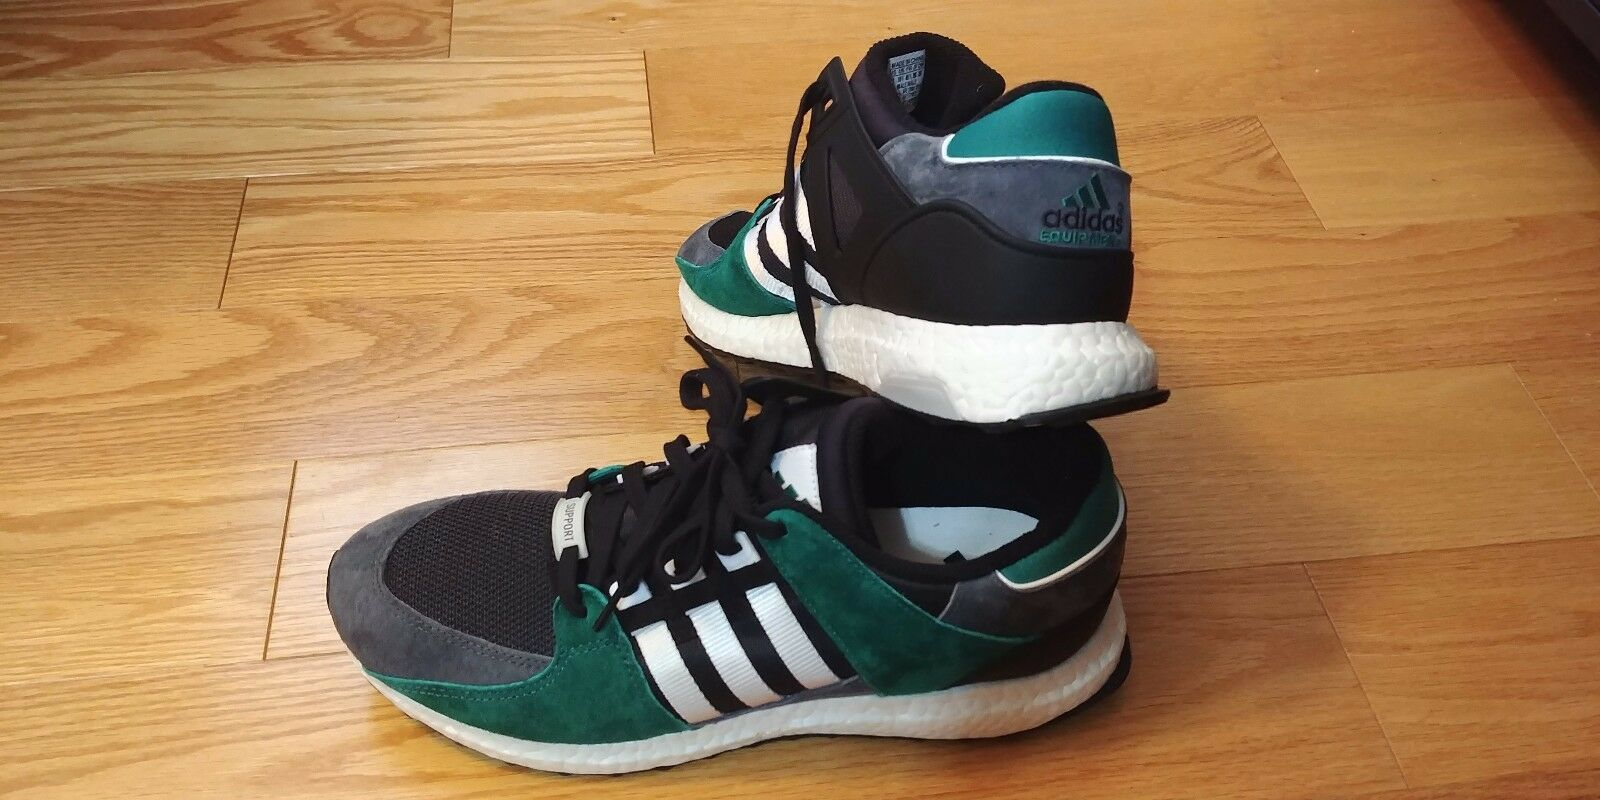 ADIDAS EQT MEN'S SIZE 11 SUB GREEN 93 16  S79923 BOOST SHOES NEVER WORN